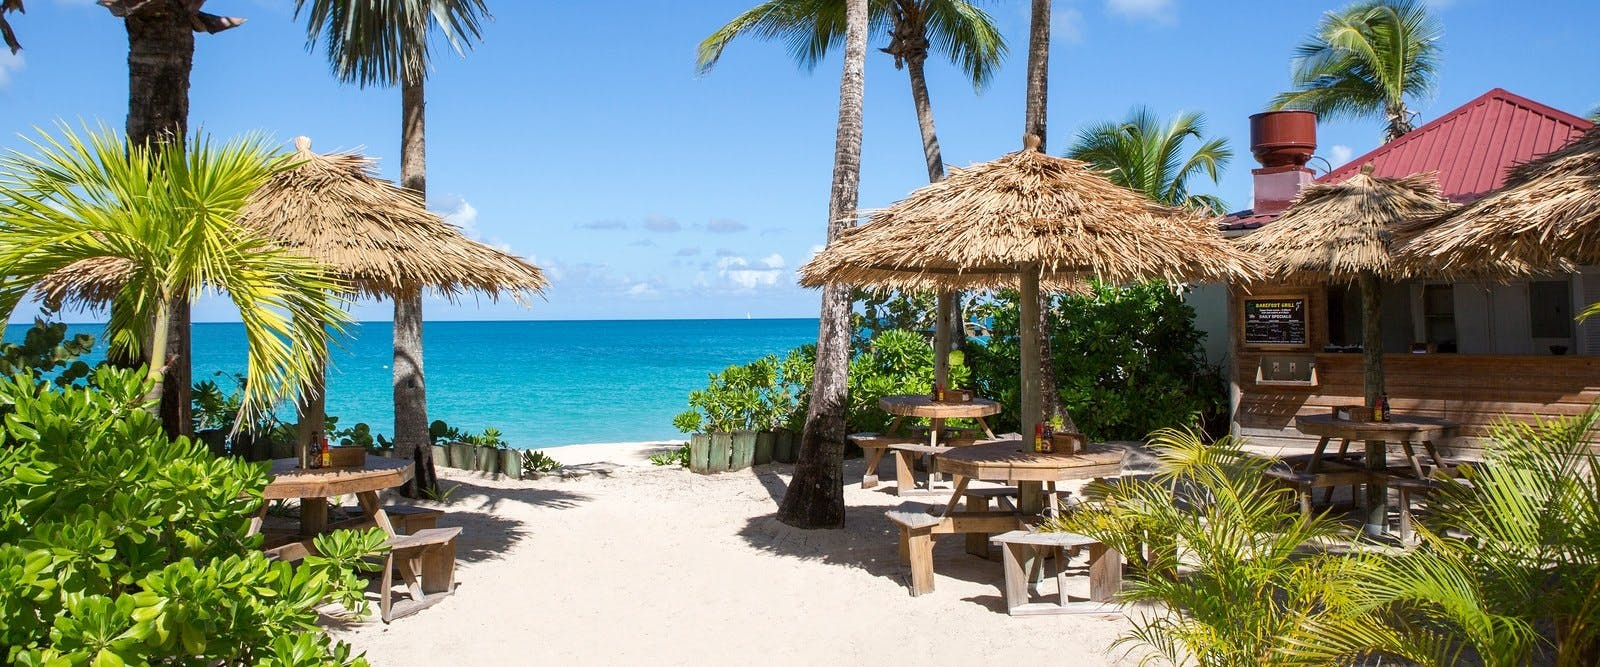 Barefoot Grill at Galley Bay Resort & Spa, Antigua